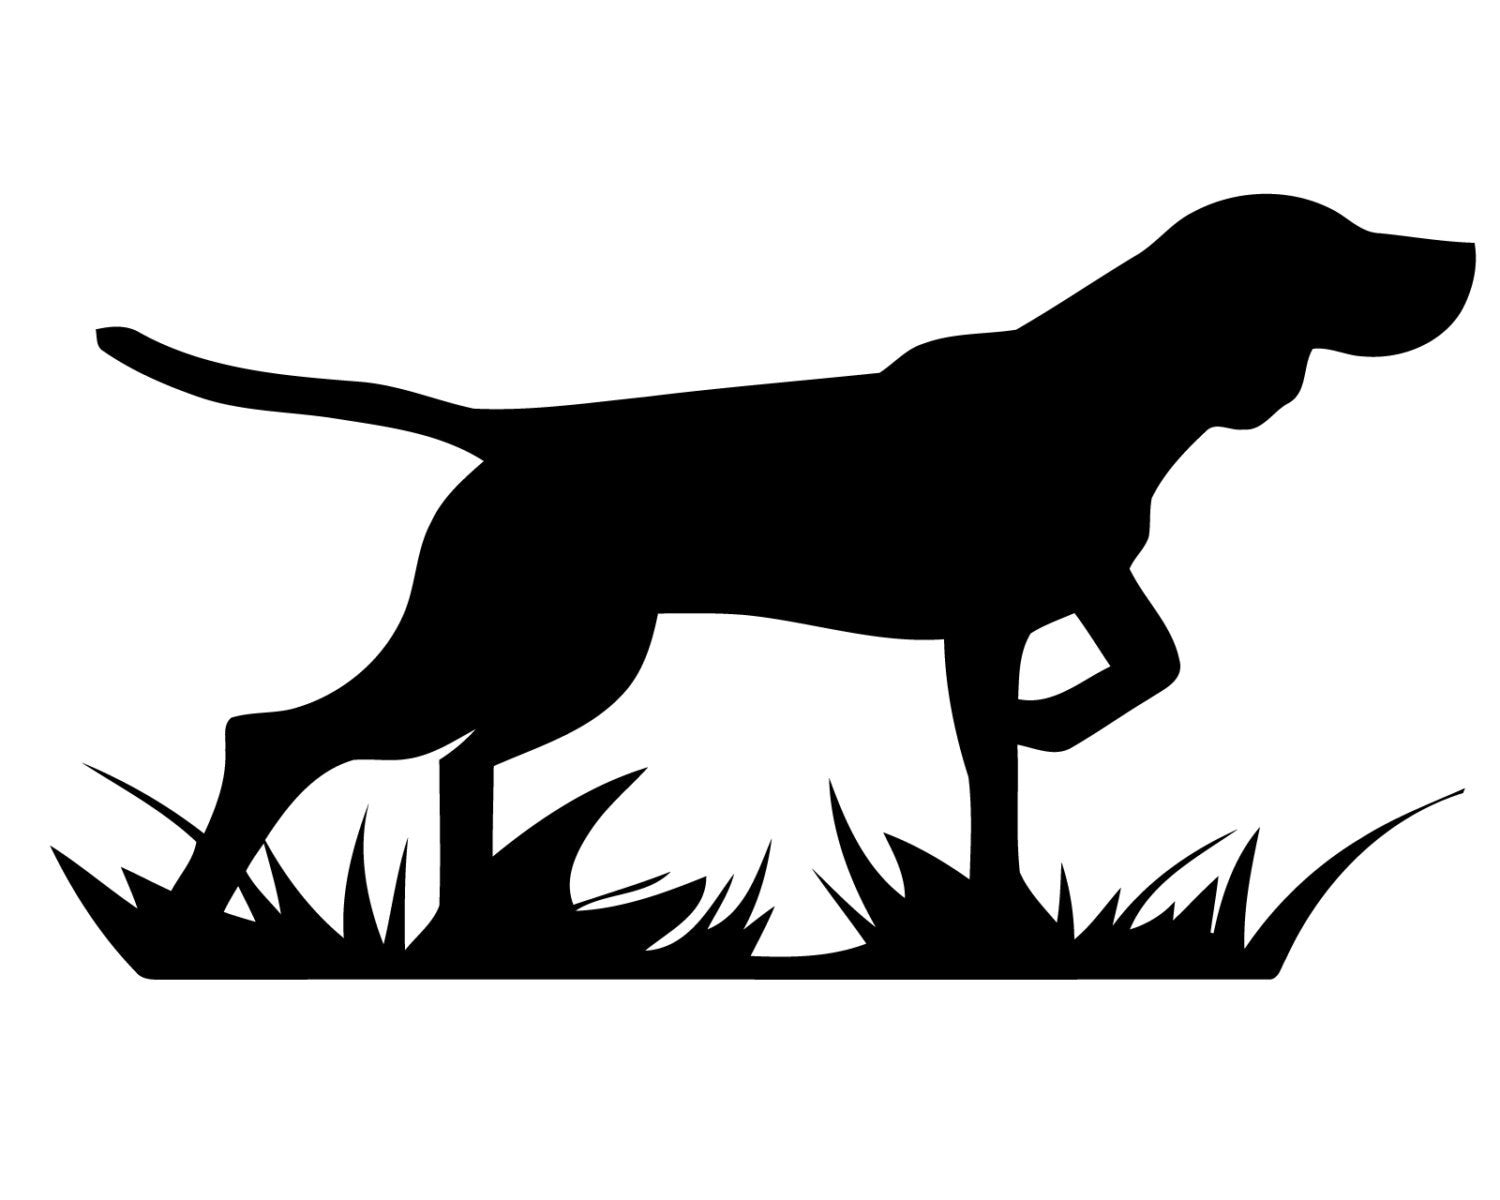 Hunting Dog Decal Geese Hunting Sticker Retriever Hunting - Sporting dog decals